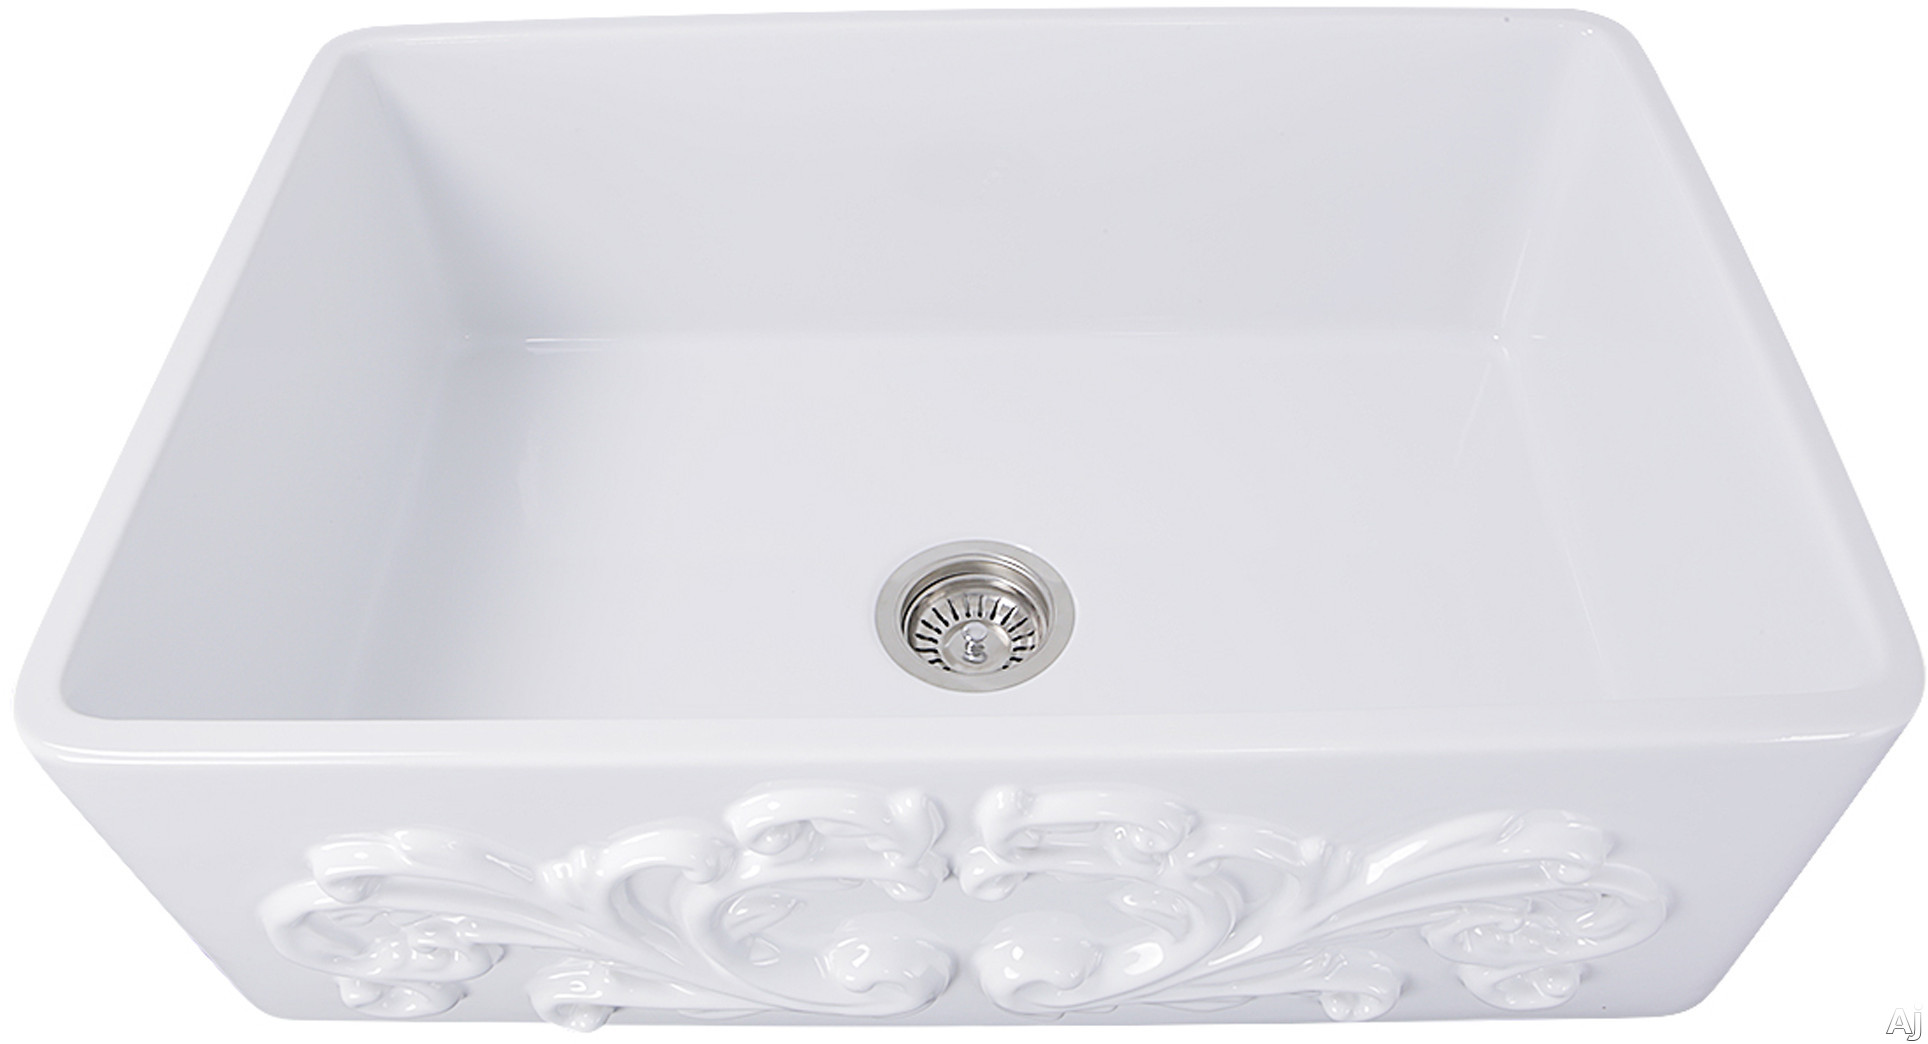 Nantucket Sinks Vineyard Collection FCFS3020SFILIGREE 30 Inch Single Bowl Farmhouse Fireclay Sink with Solid Fireclay Construction, Scratch Resistant and Filigree Apron